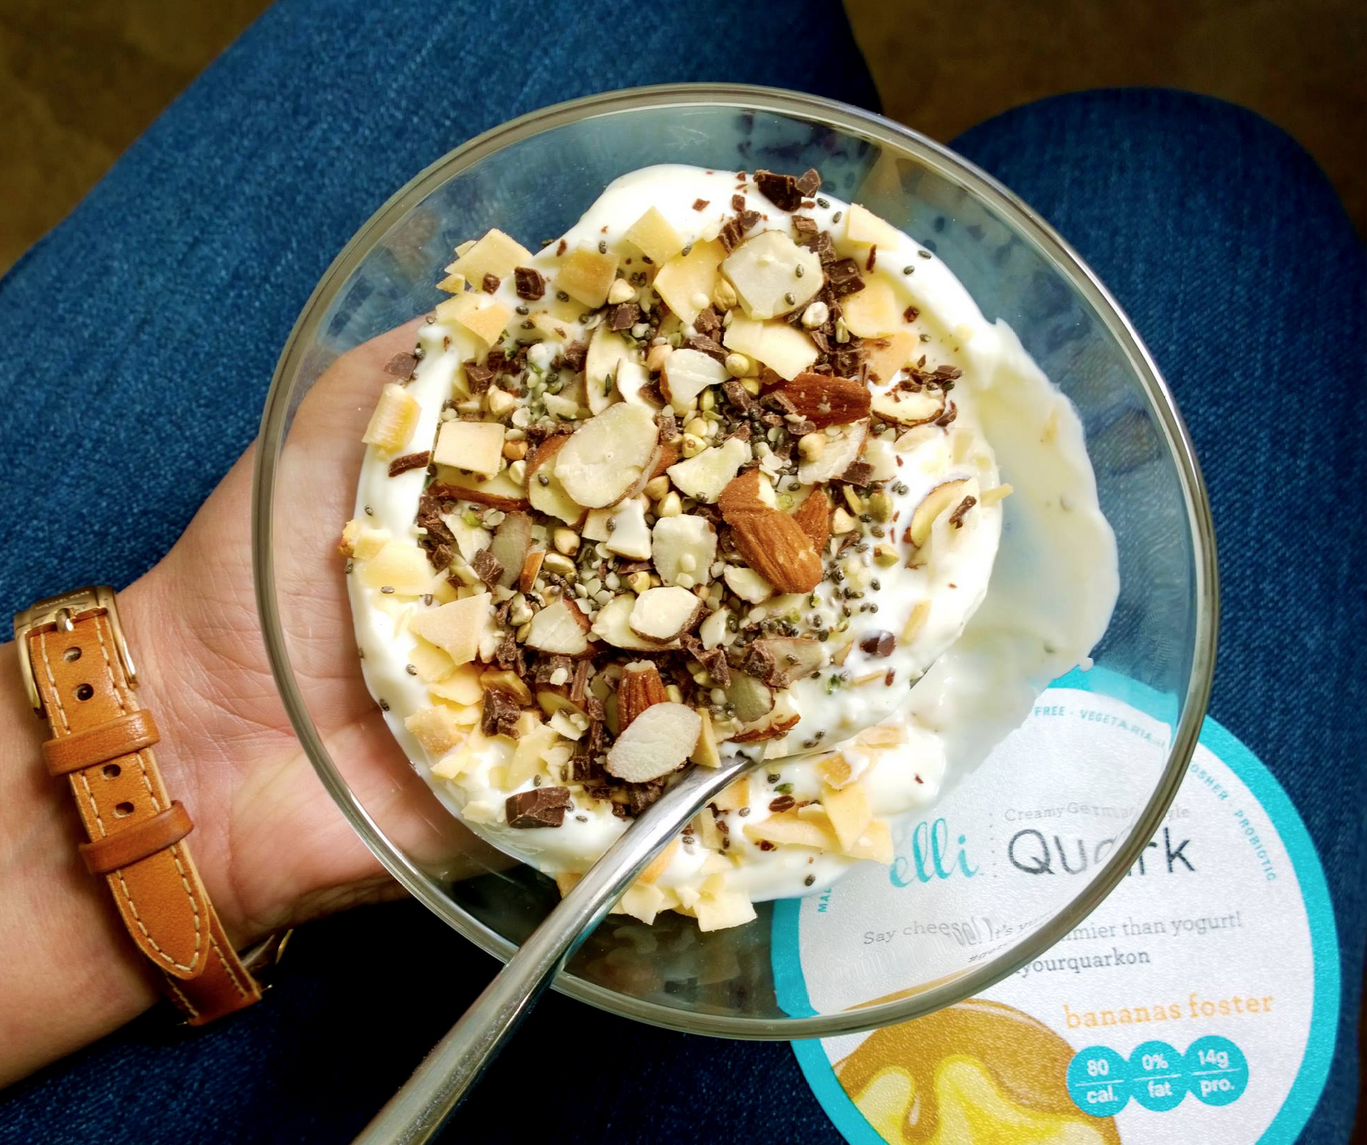 Elli Quark BANANAS FOSTER fueling the day with a healthy mix of sliced almonds, chia-buckwheat-hemp cereal, toasted coconut chips, & stevia-sweetened chocolate! (21g protein with no added sugar!) ;) #eatclean